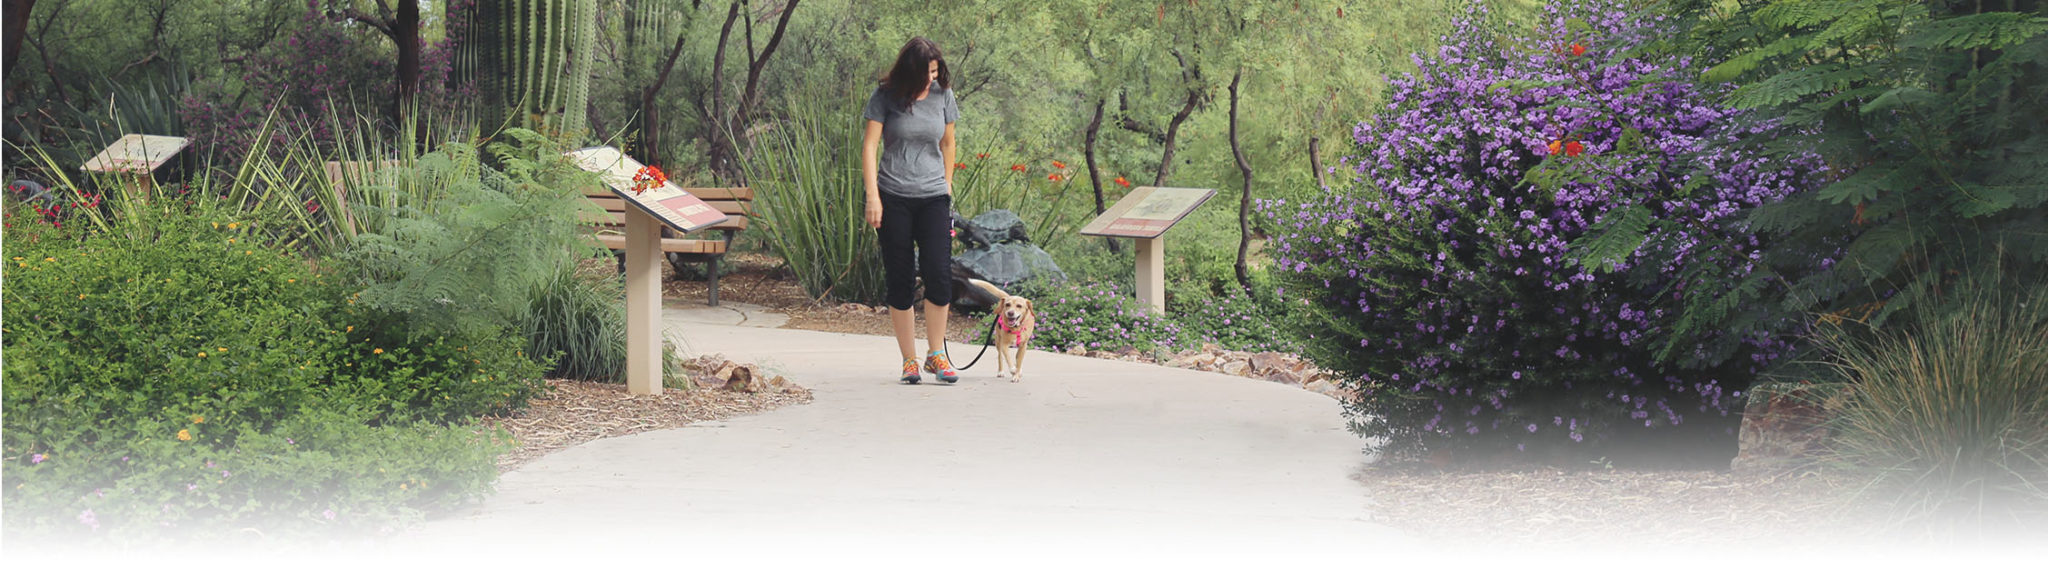 tucson private dog training